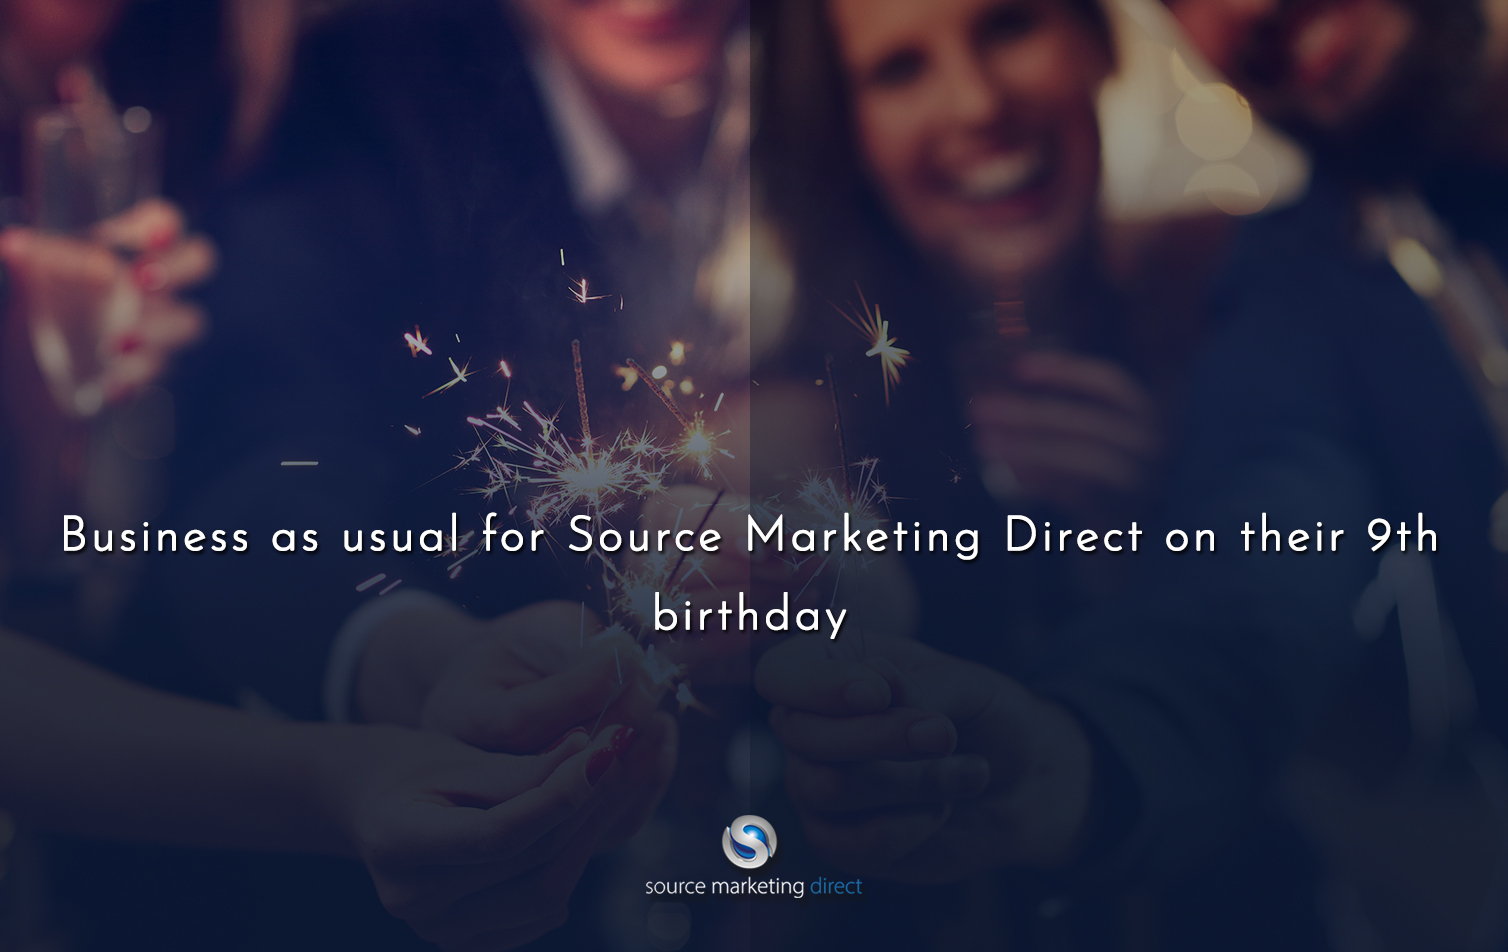 Business as usual for Source Marketing Direct on their 9th birthday